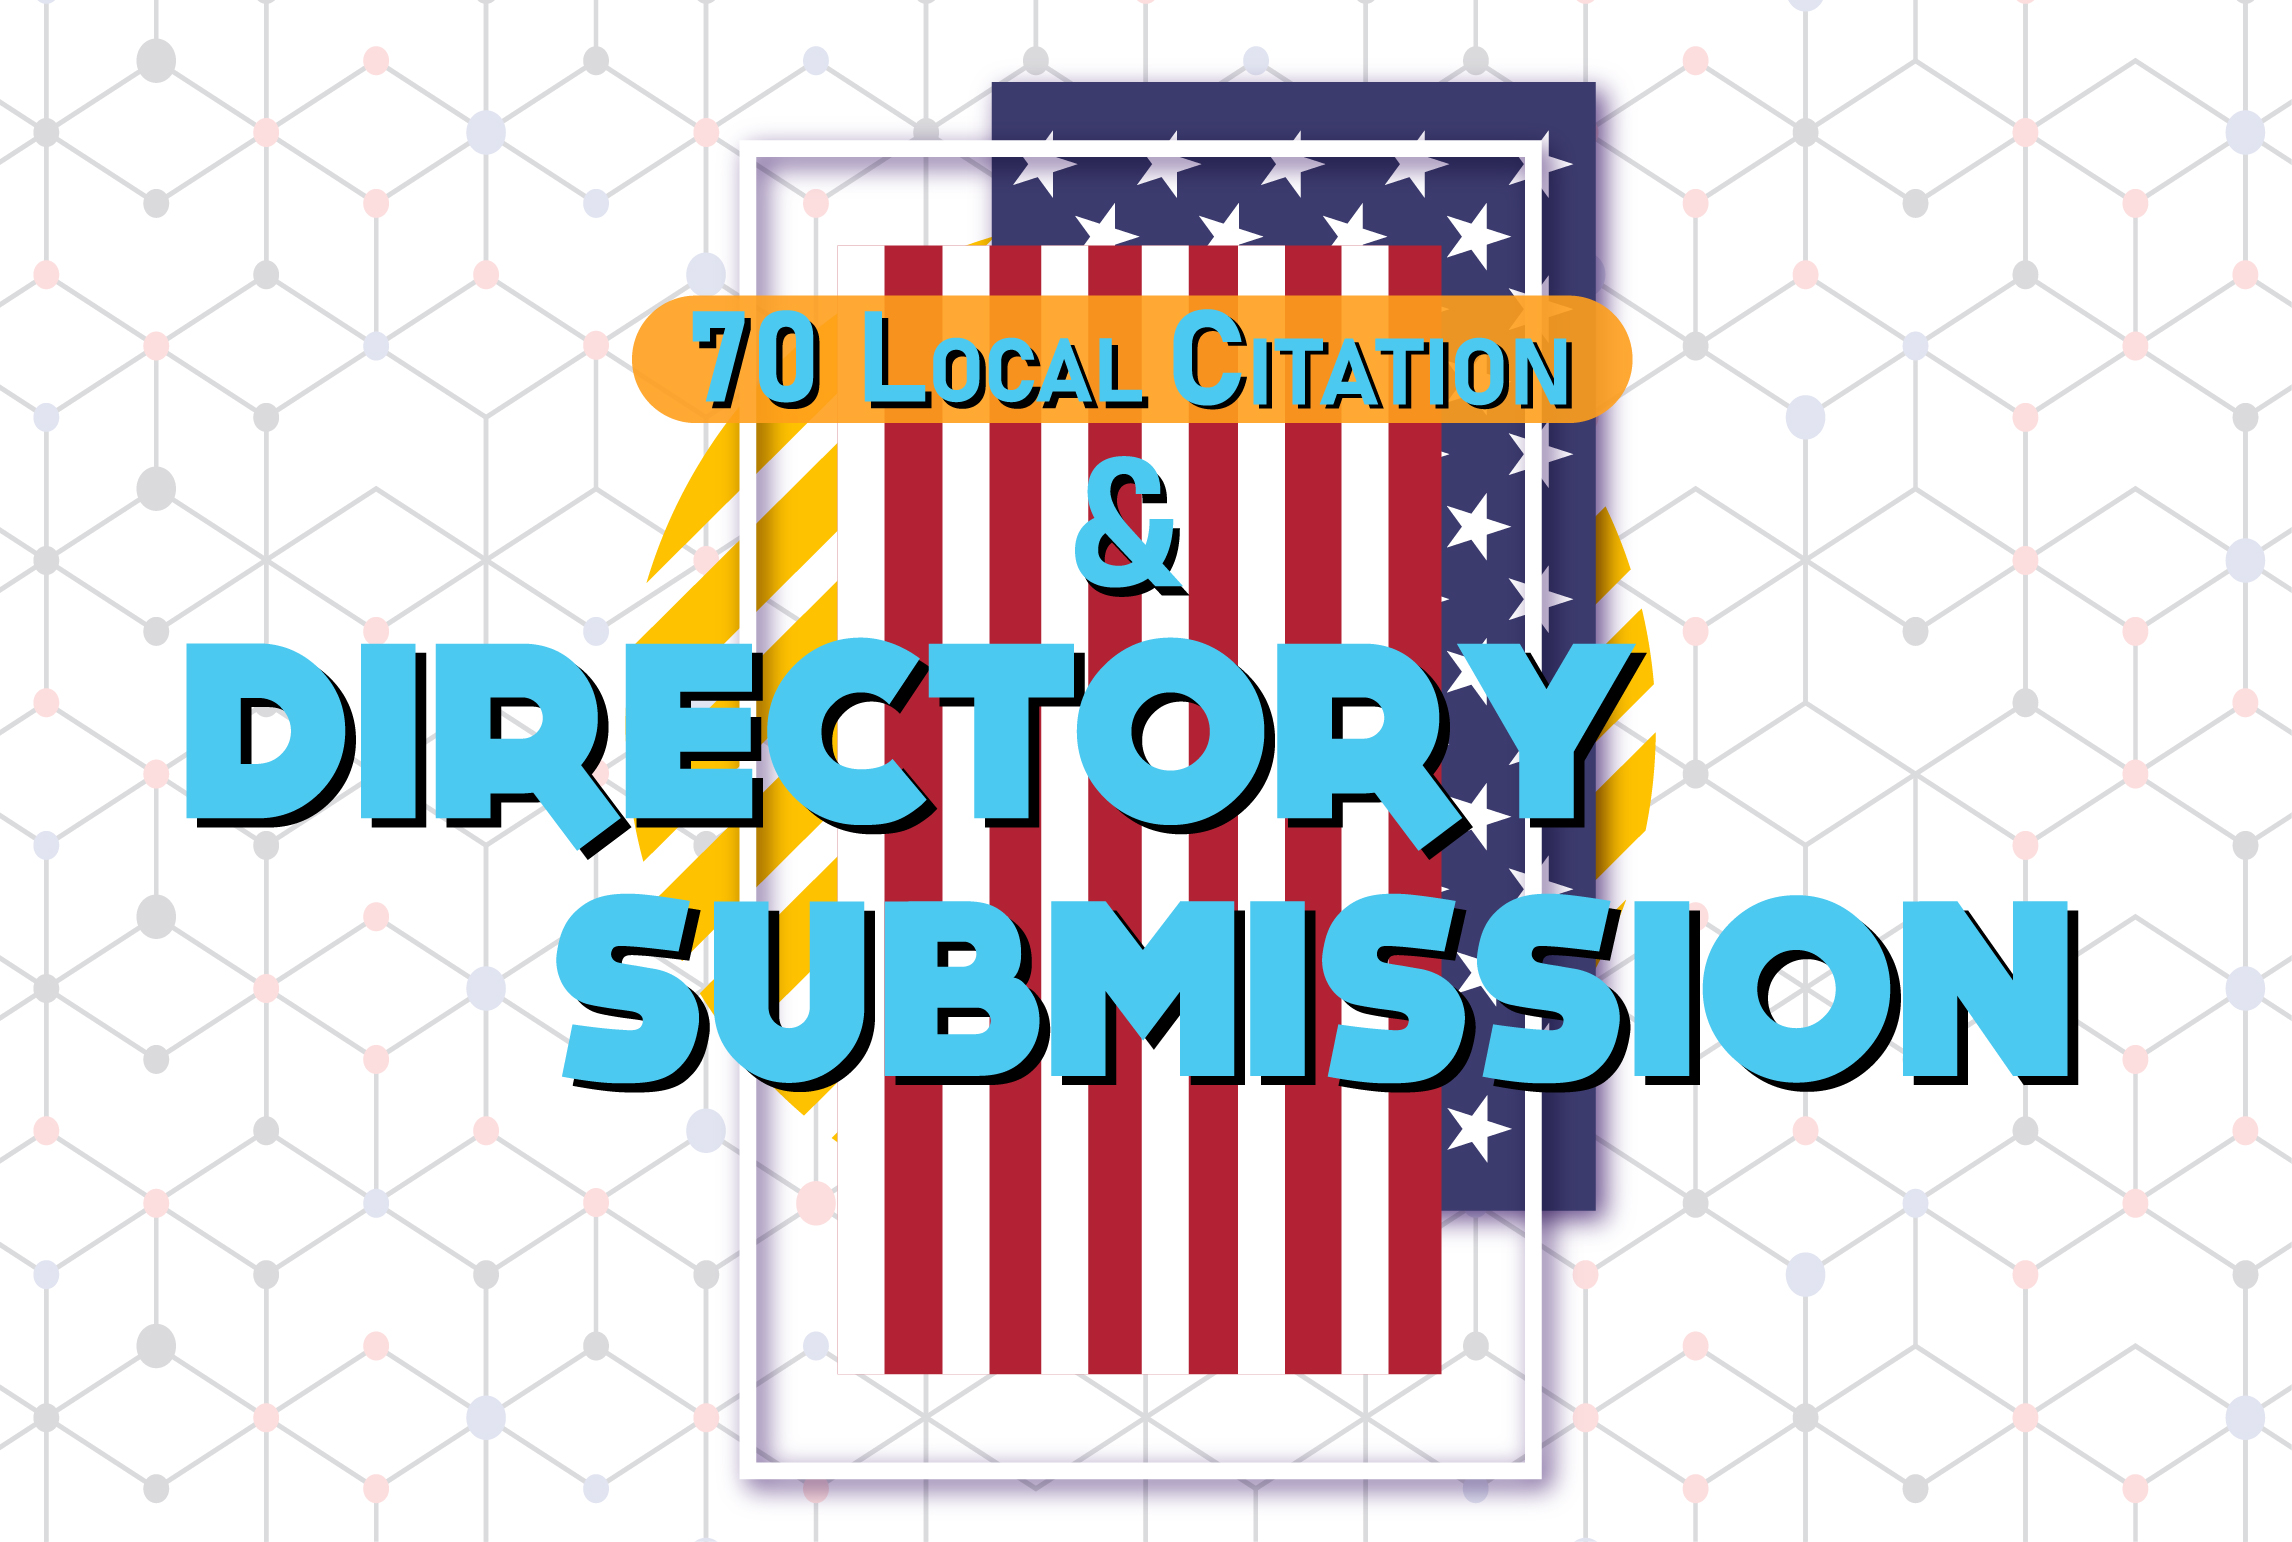 I will do top 70 USA local citations and directory submission